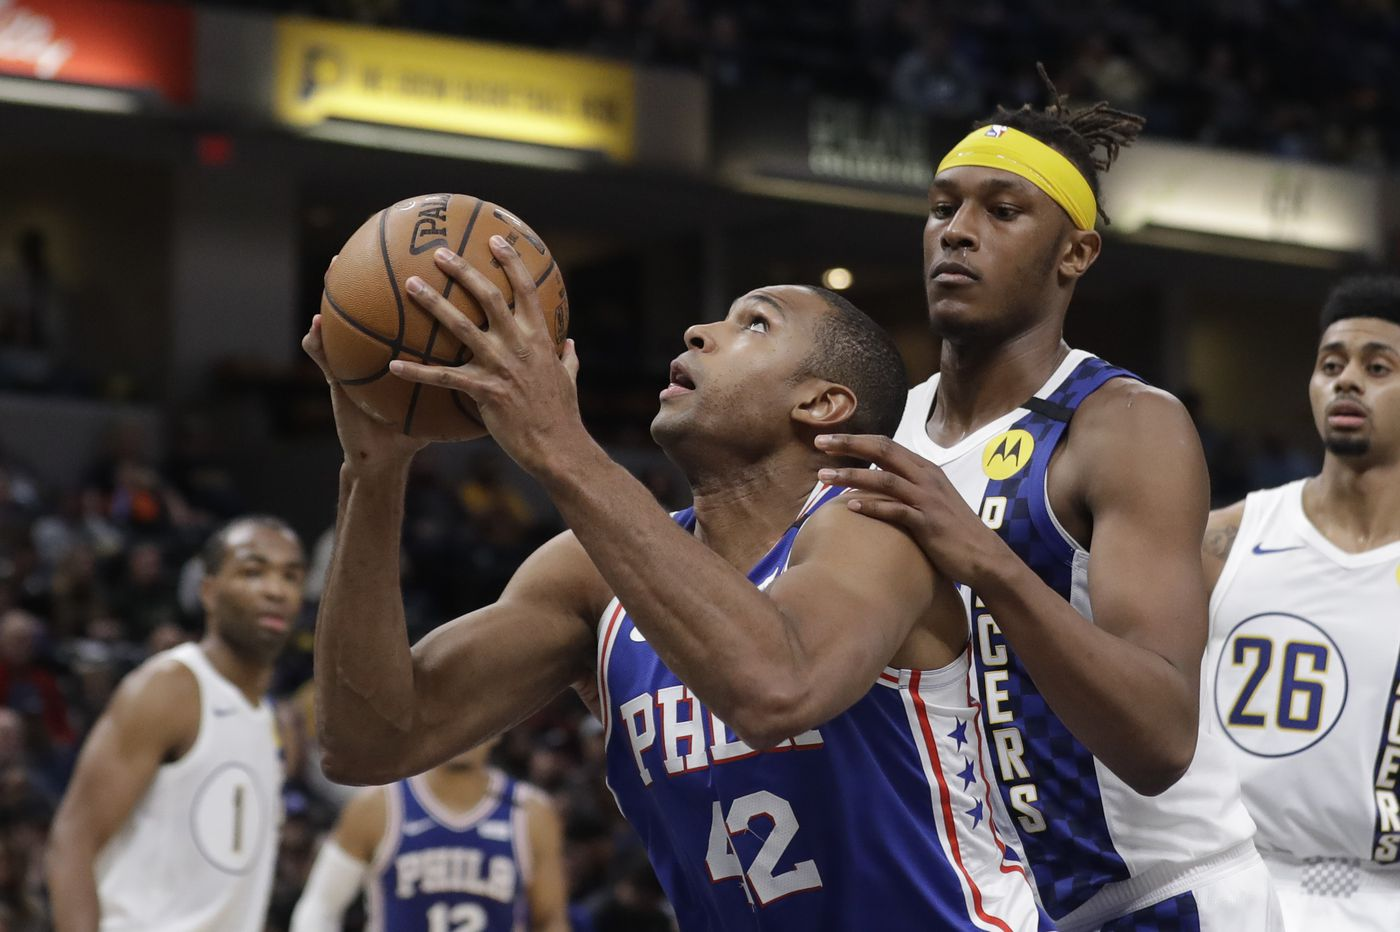 Lackluster shooting and late-game blunders are dooming Sixers on road